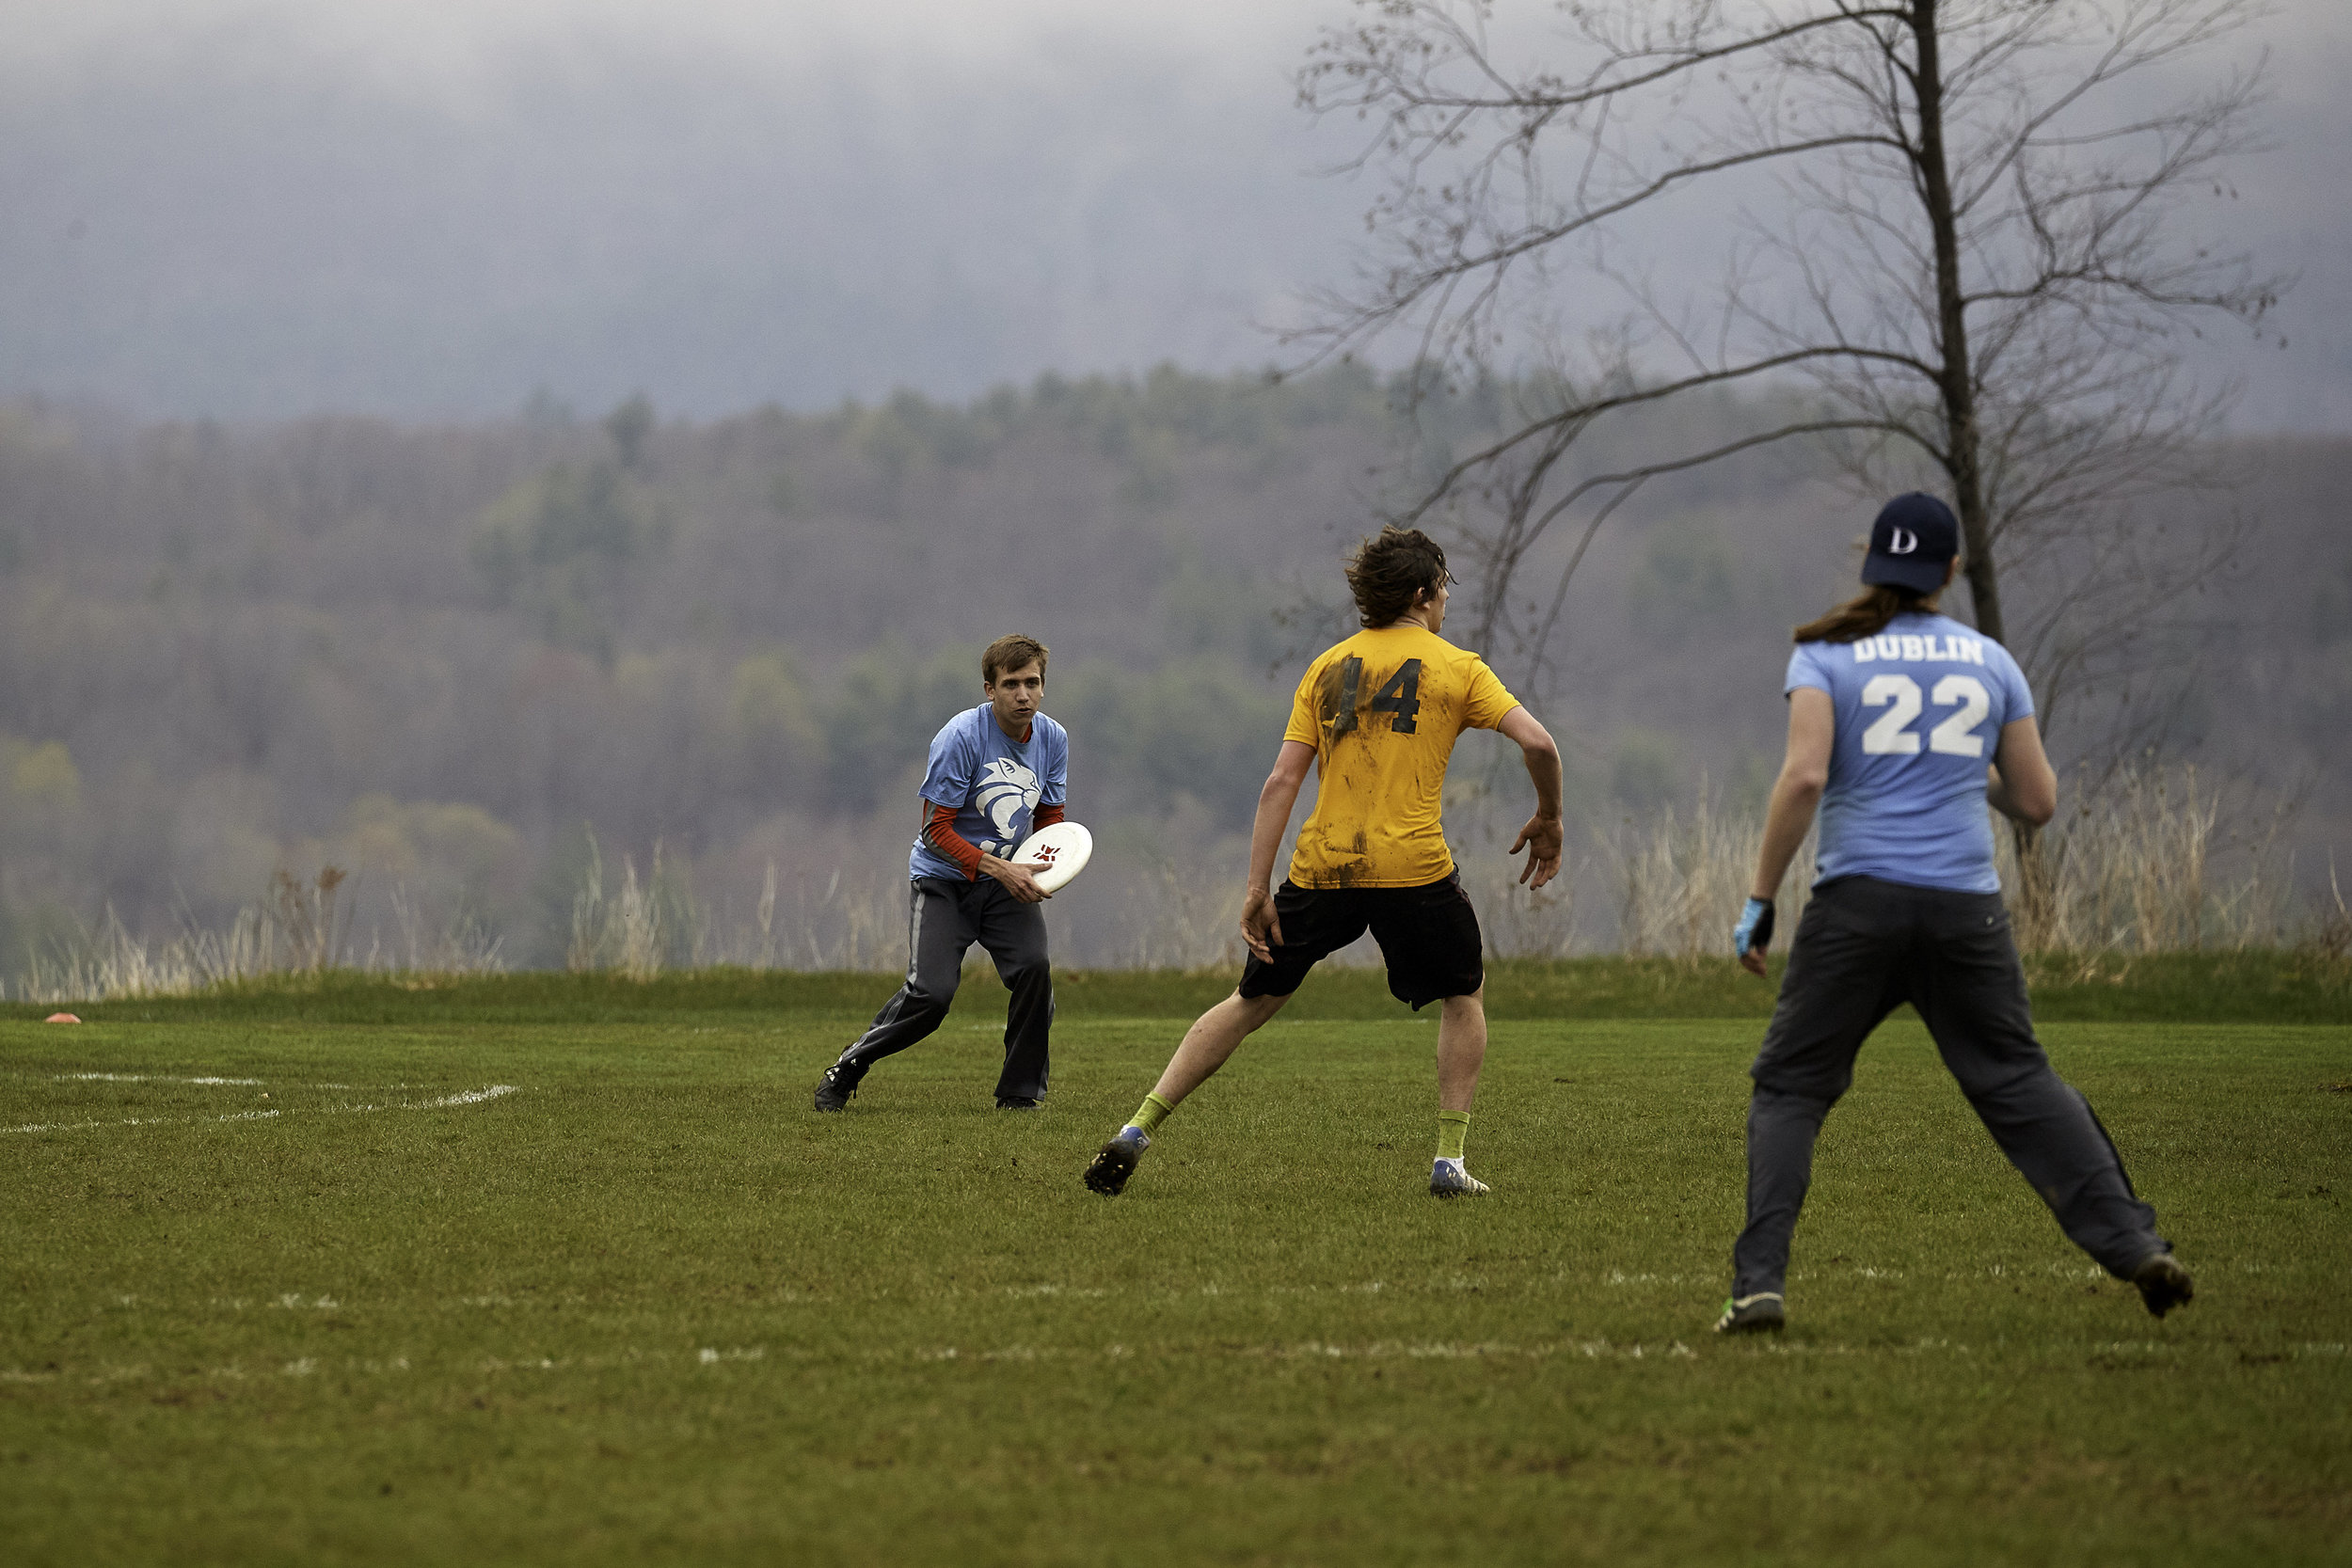 Ultimate Frisbee vs. Eagle Hill School - May 3, 2019 - 188685.jpg